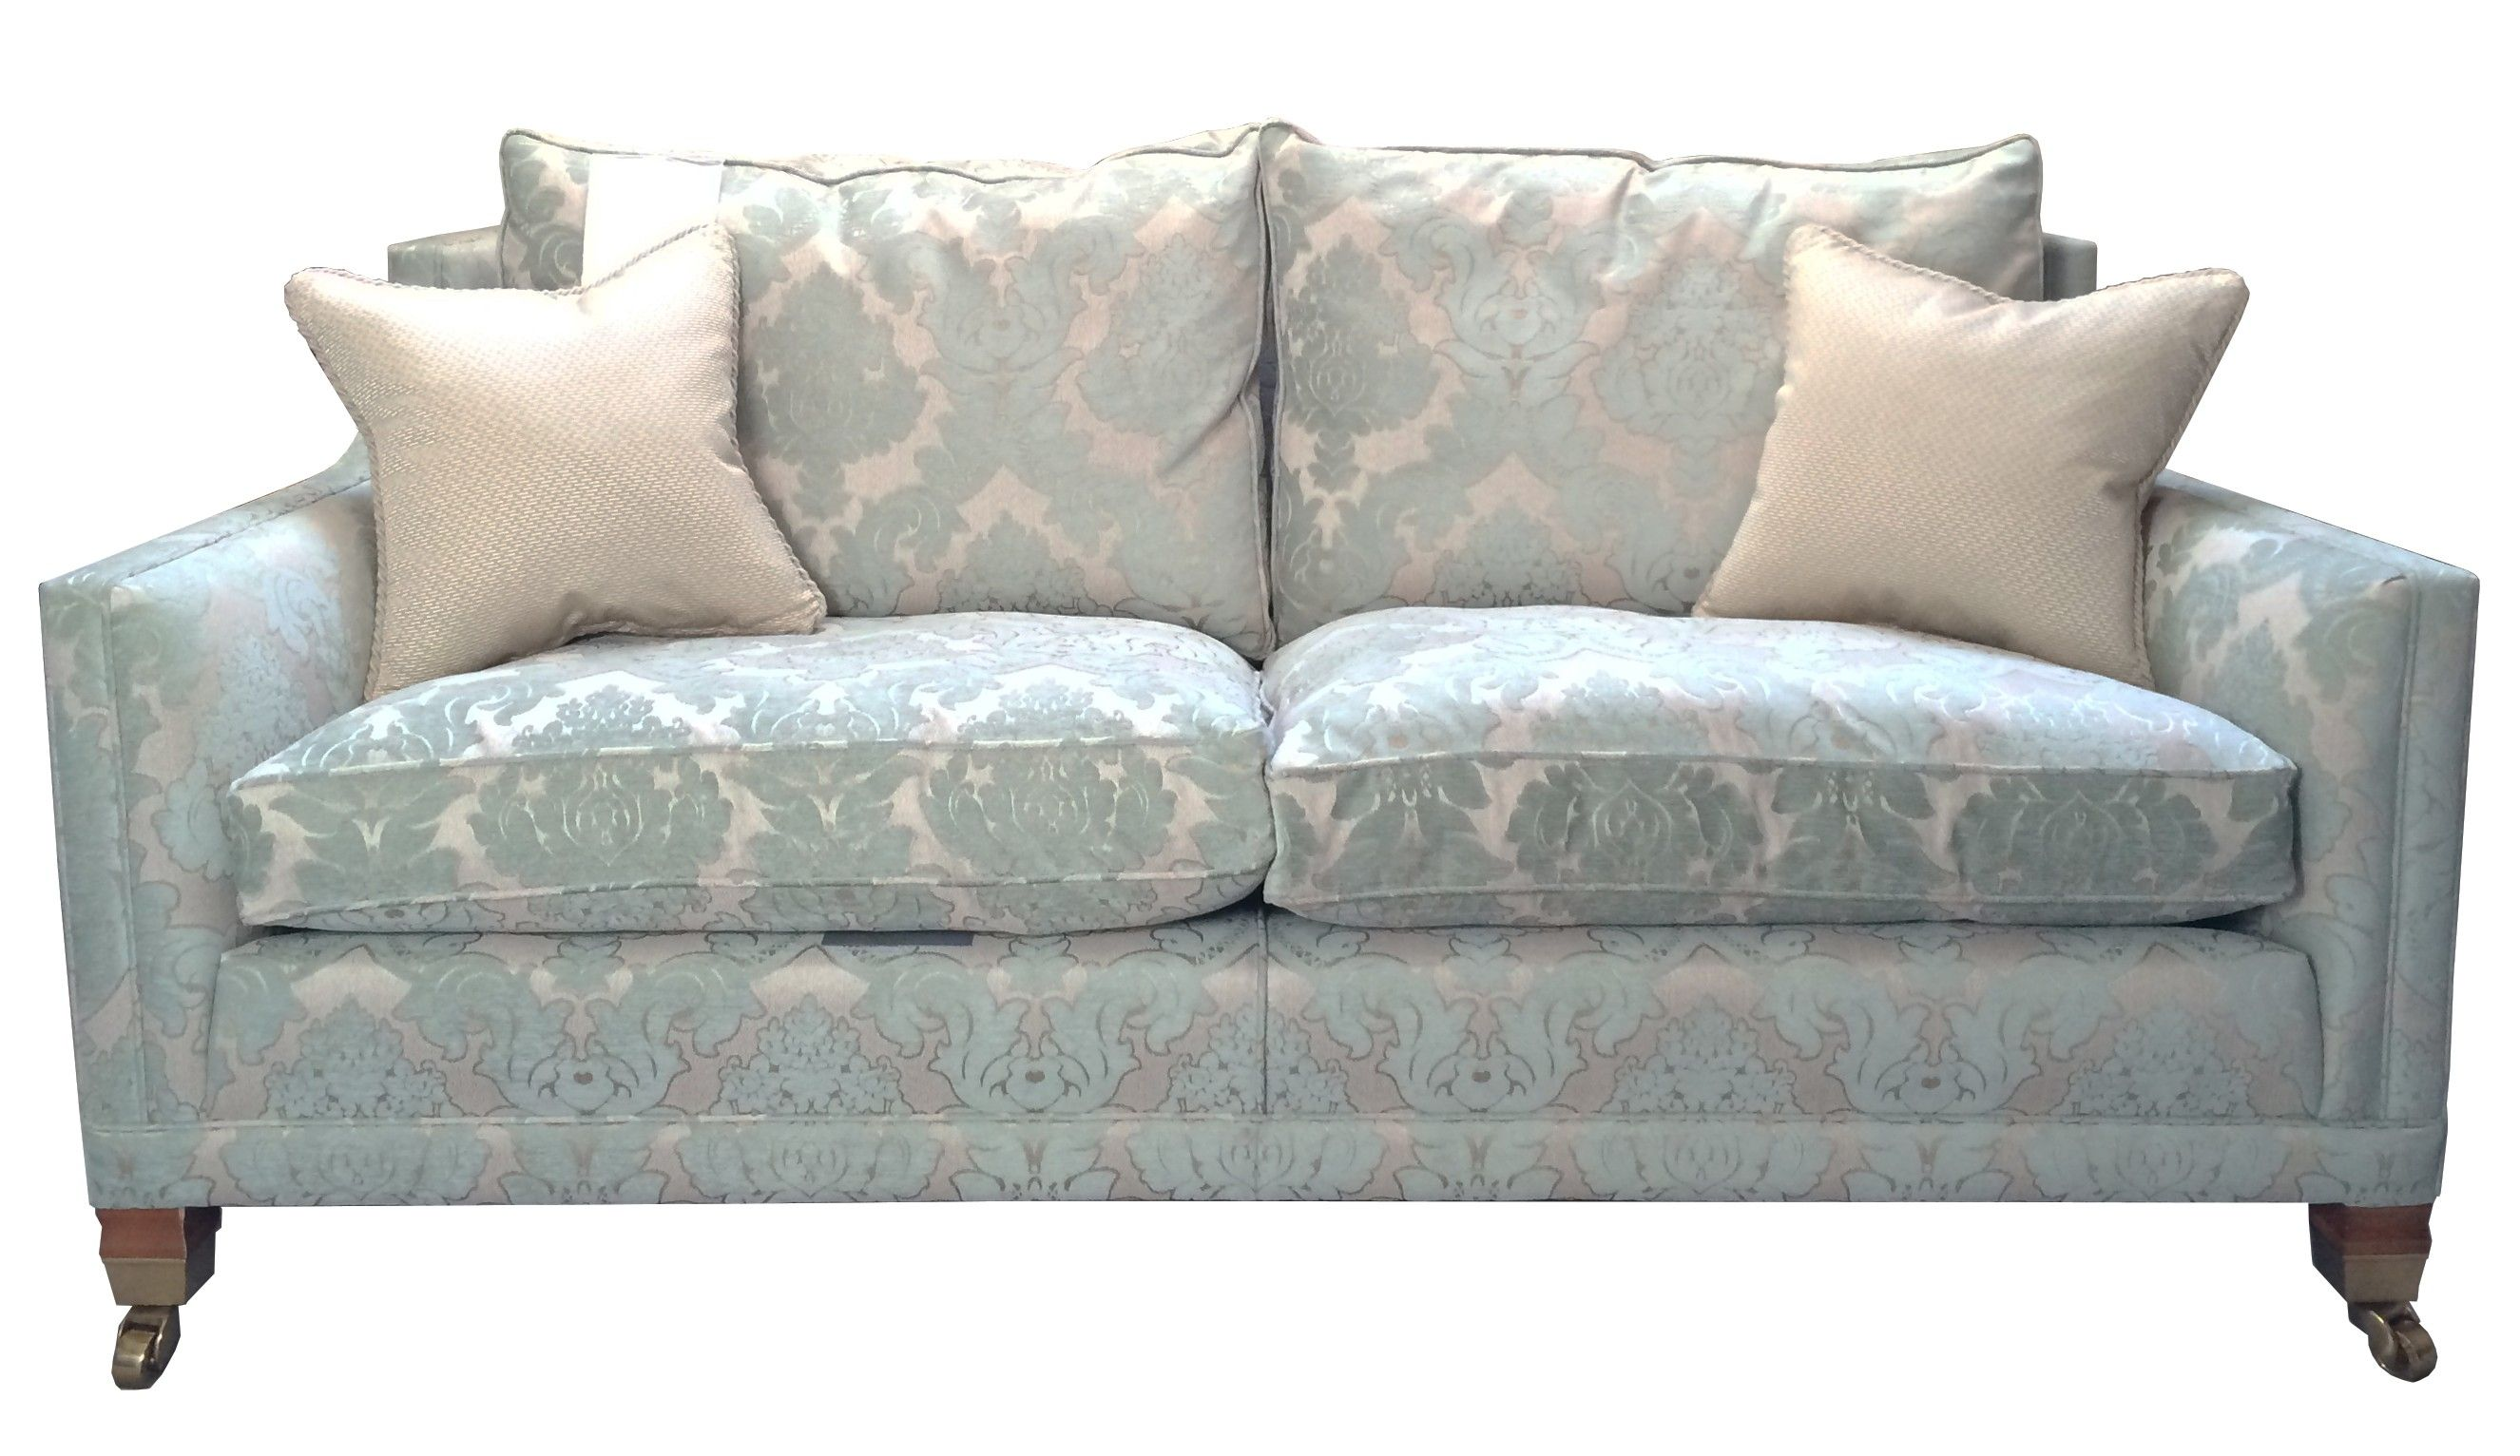 Duresta Clearance Villeneuve Medium sofa